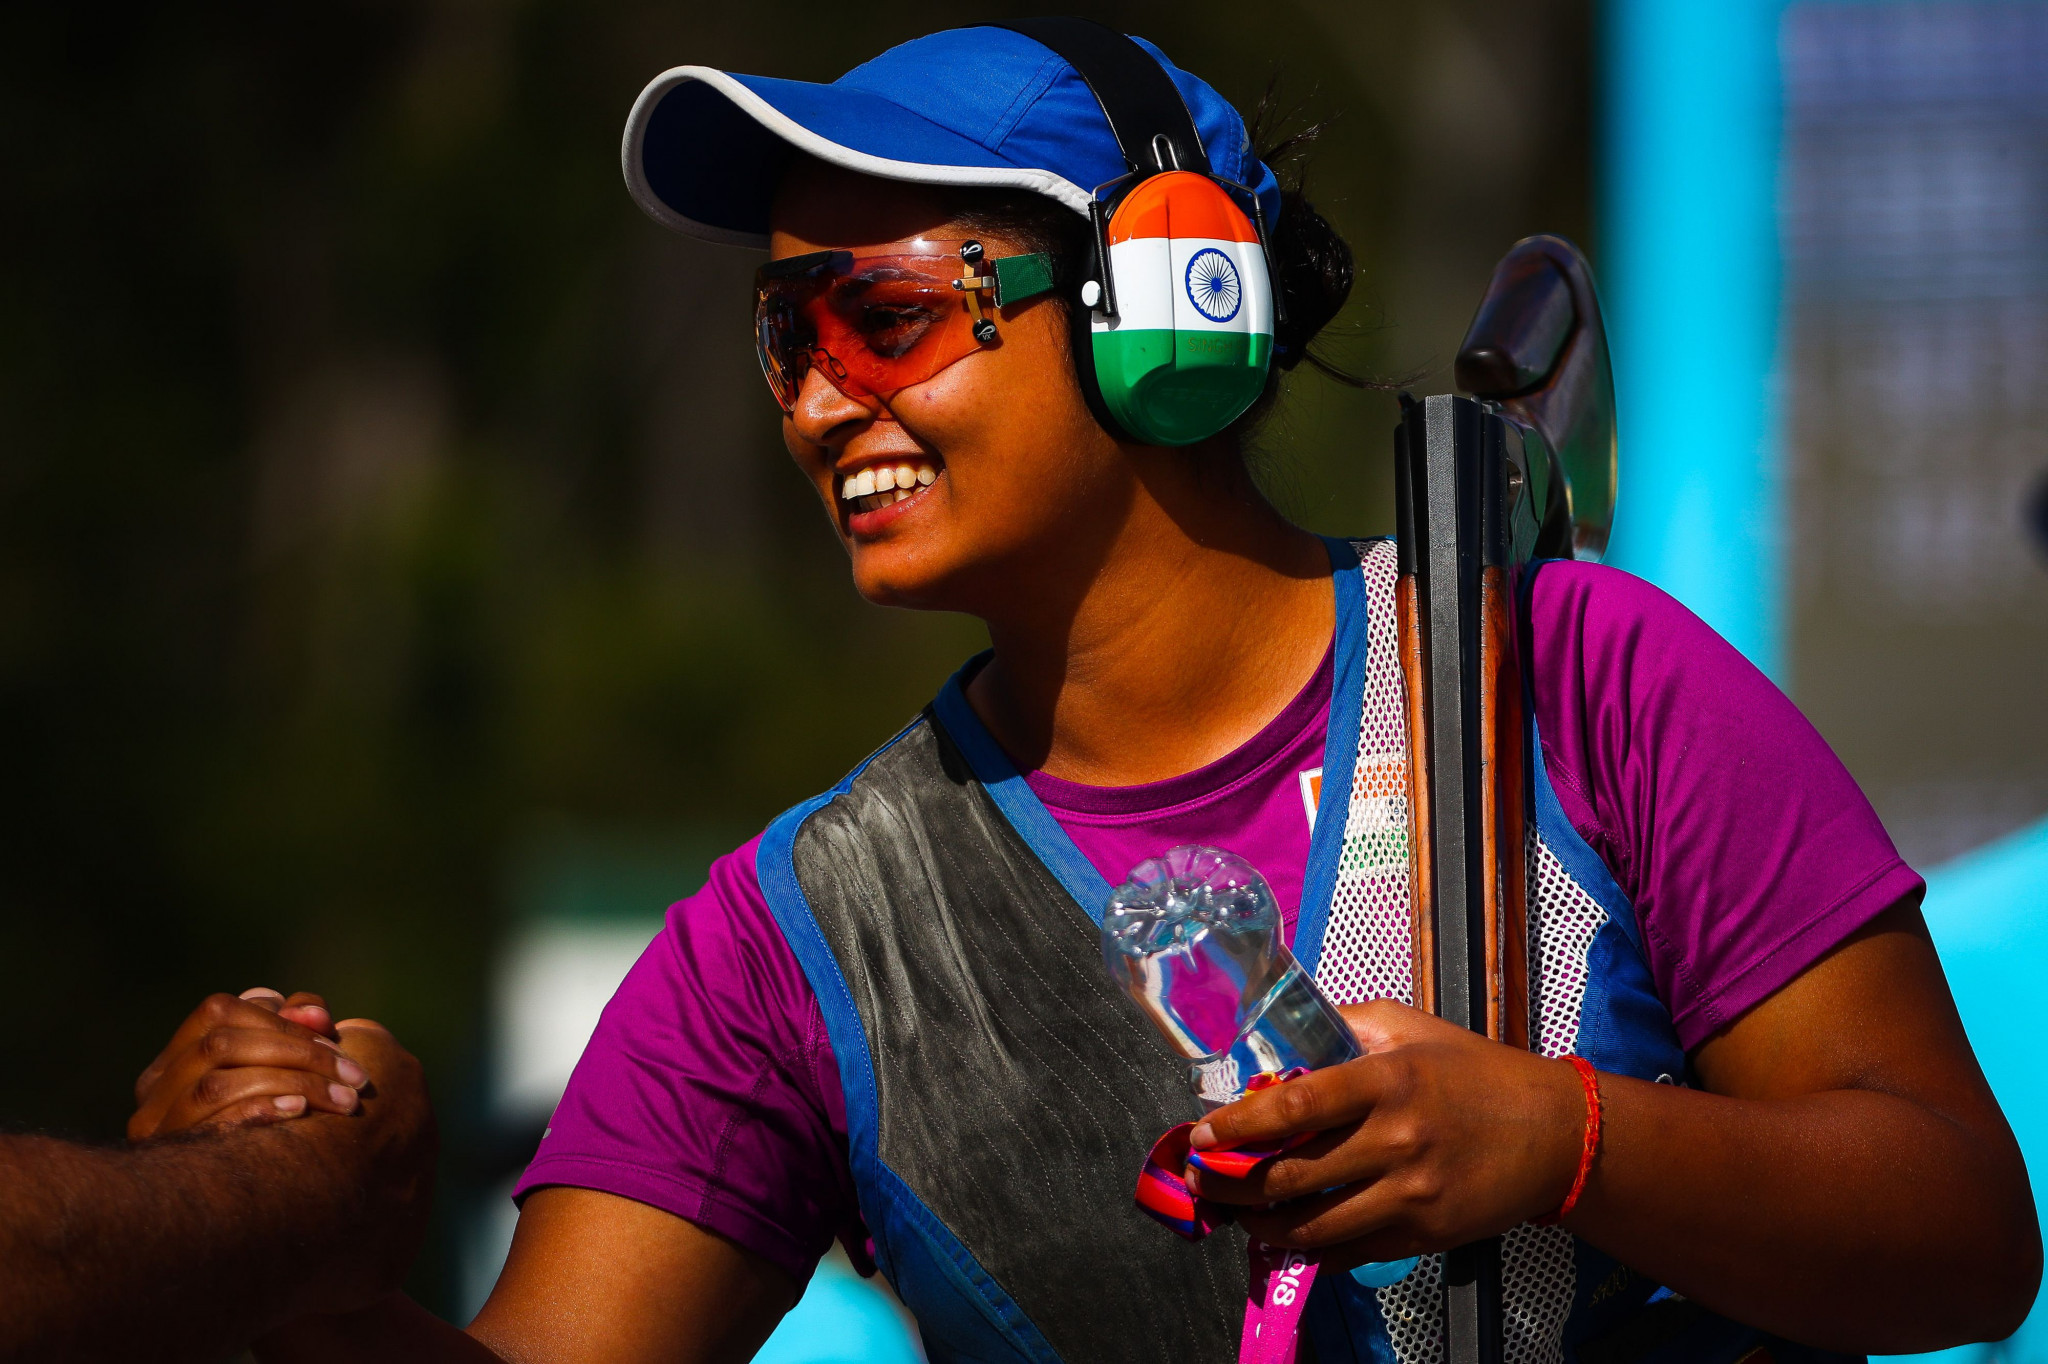 Exclusive: India could host Commonwealth Games shooting medal event around Birmingham 2022